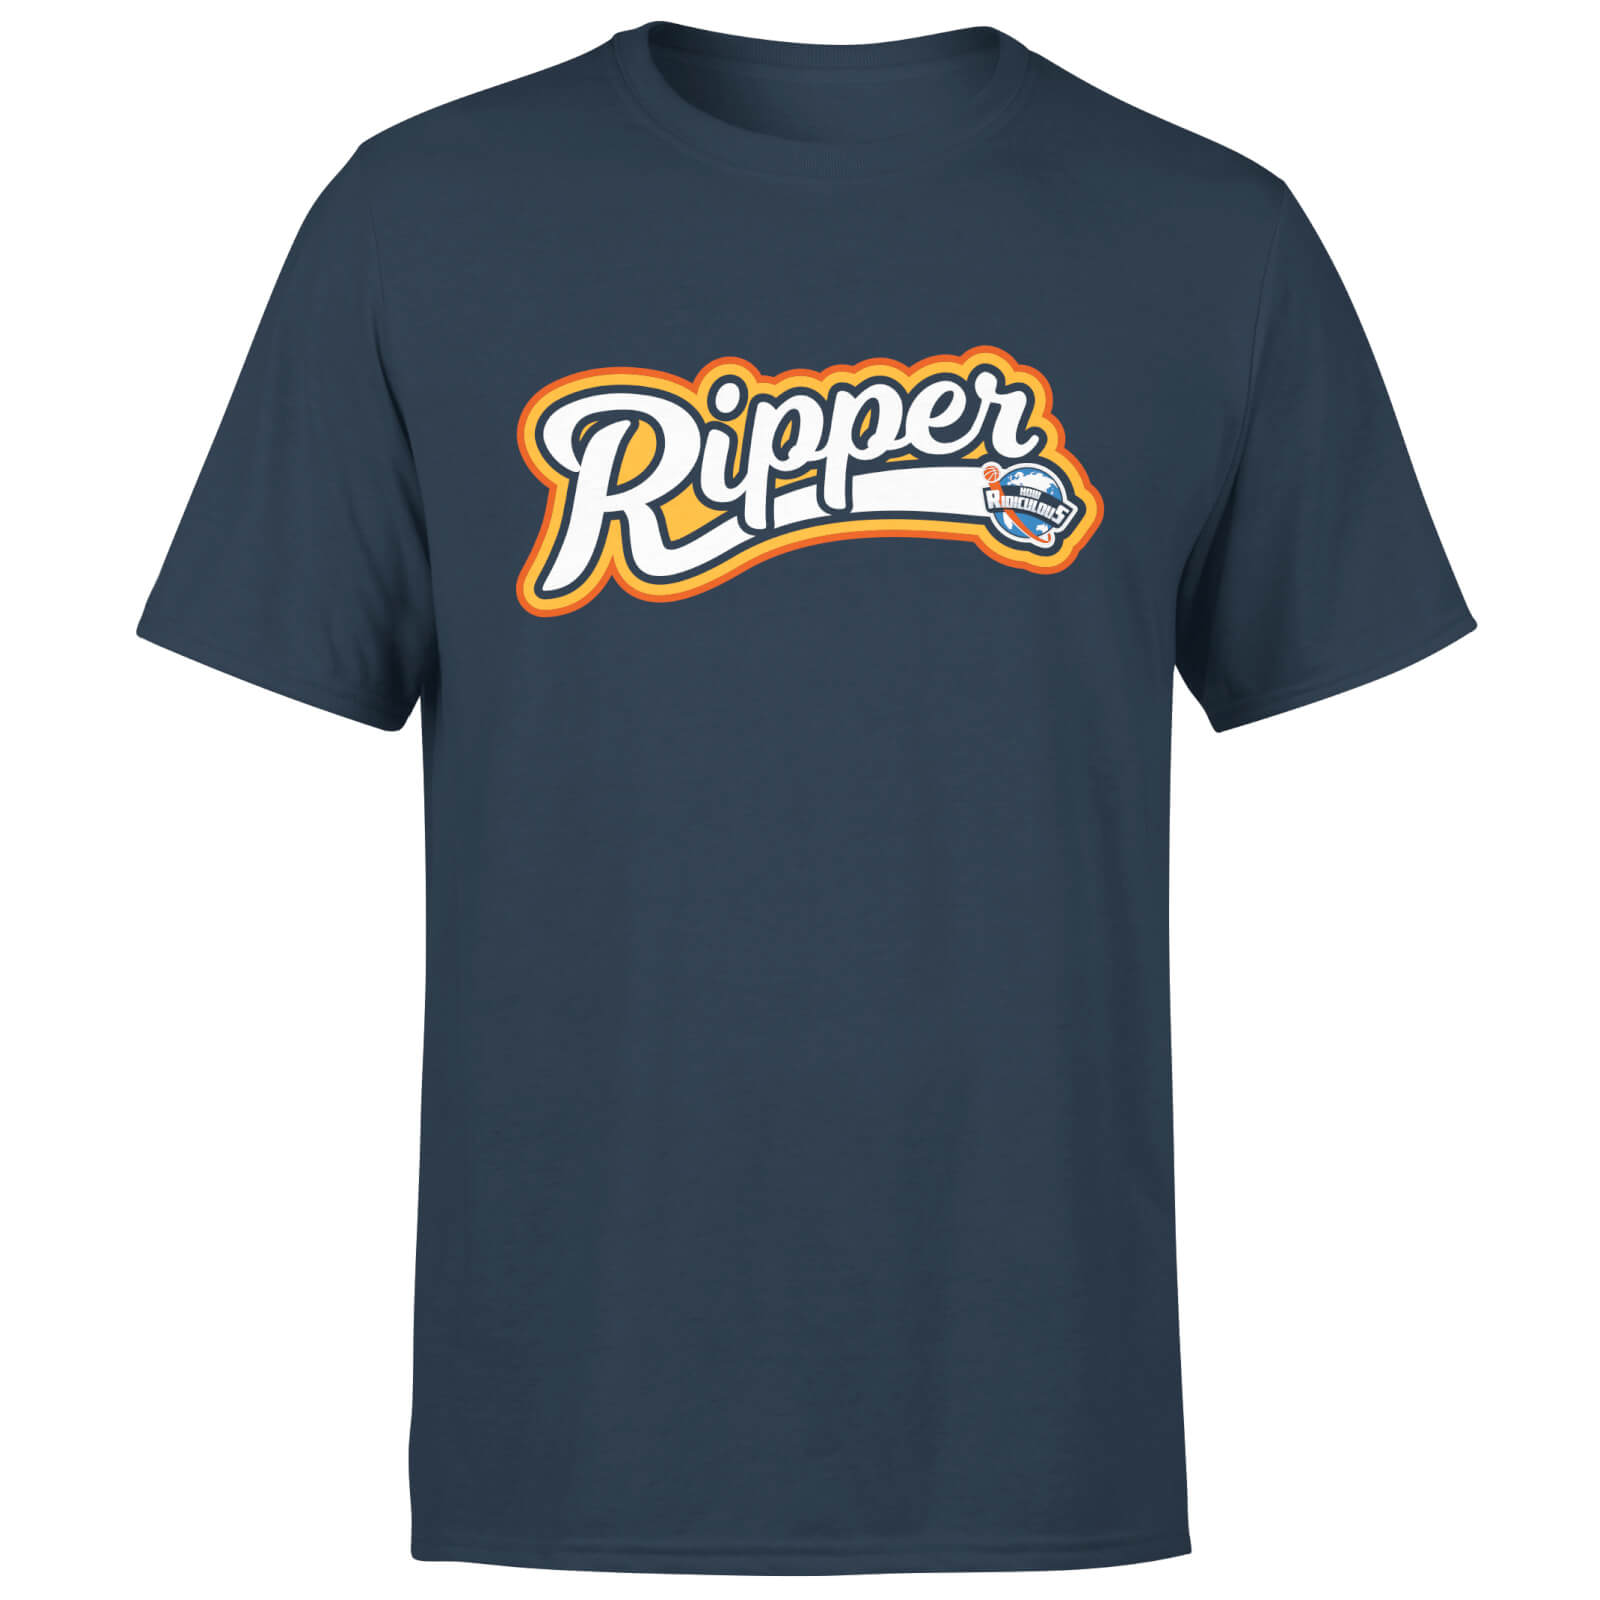 How Ridiculous Ripper T-Shirt - Navy